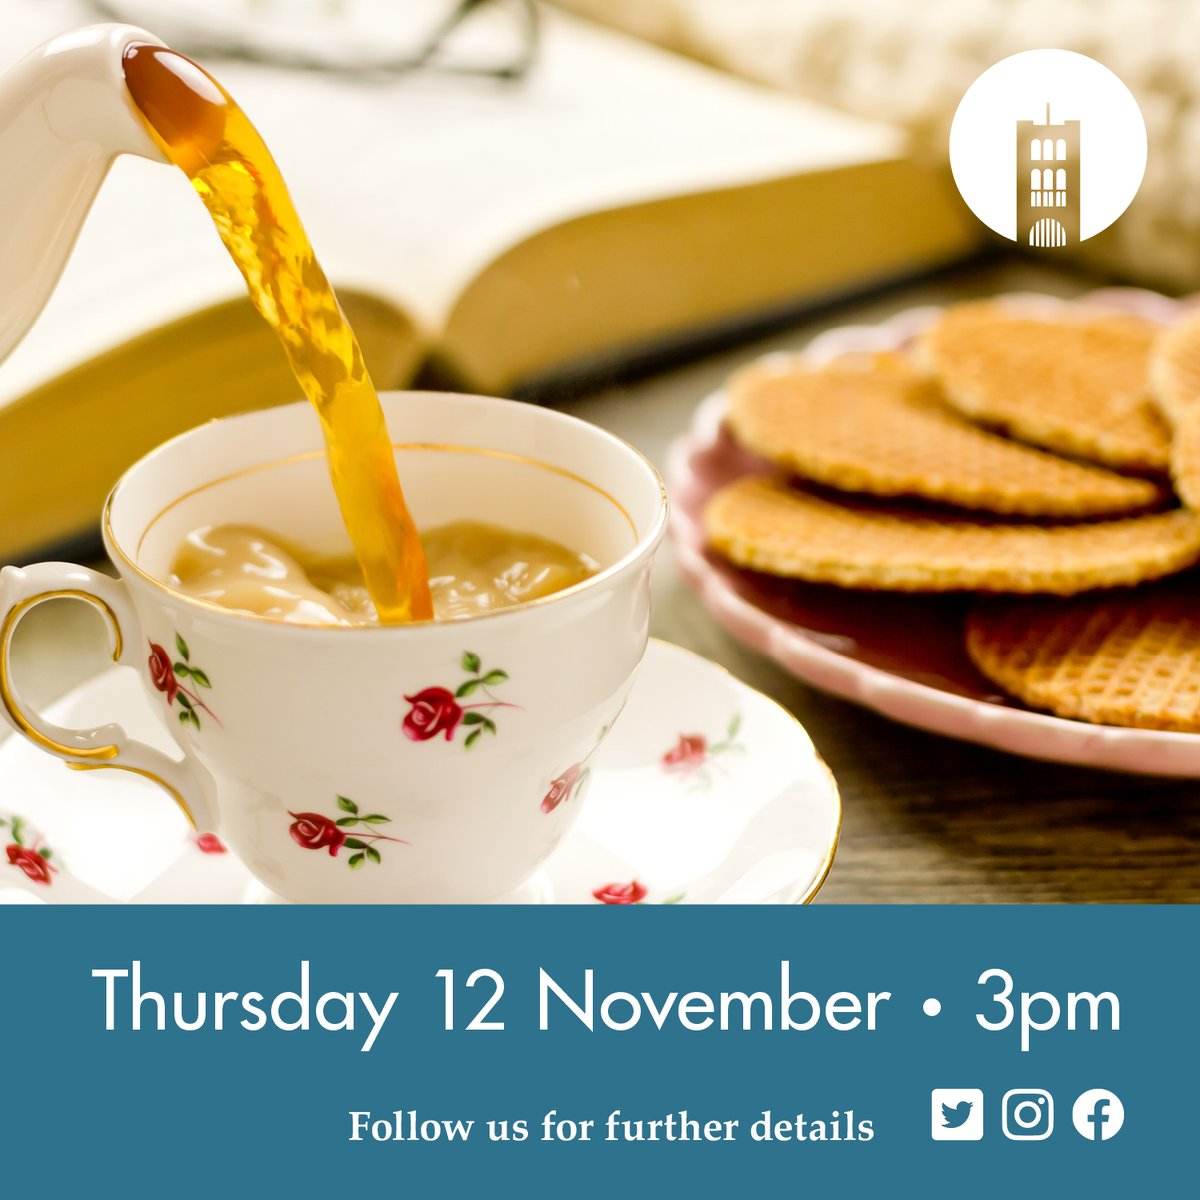 Coming Thursday 12th November at 3 PM 🗓  Our Tea & Tax Seminar is back!    To find out what topics are being discussed at this year's online only presentation follow the link below.  https://t.co/ejH4GQX11X  #suffolk #event #tax #finance #legal #accounting #taxes #seminar https://t.co/2otRwBrmau